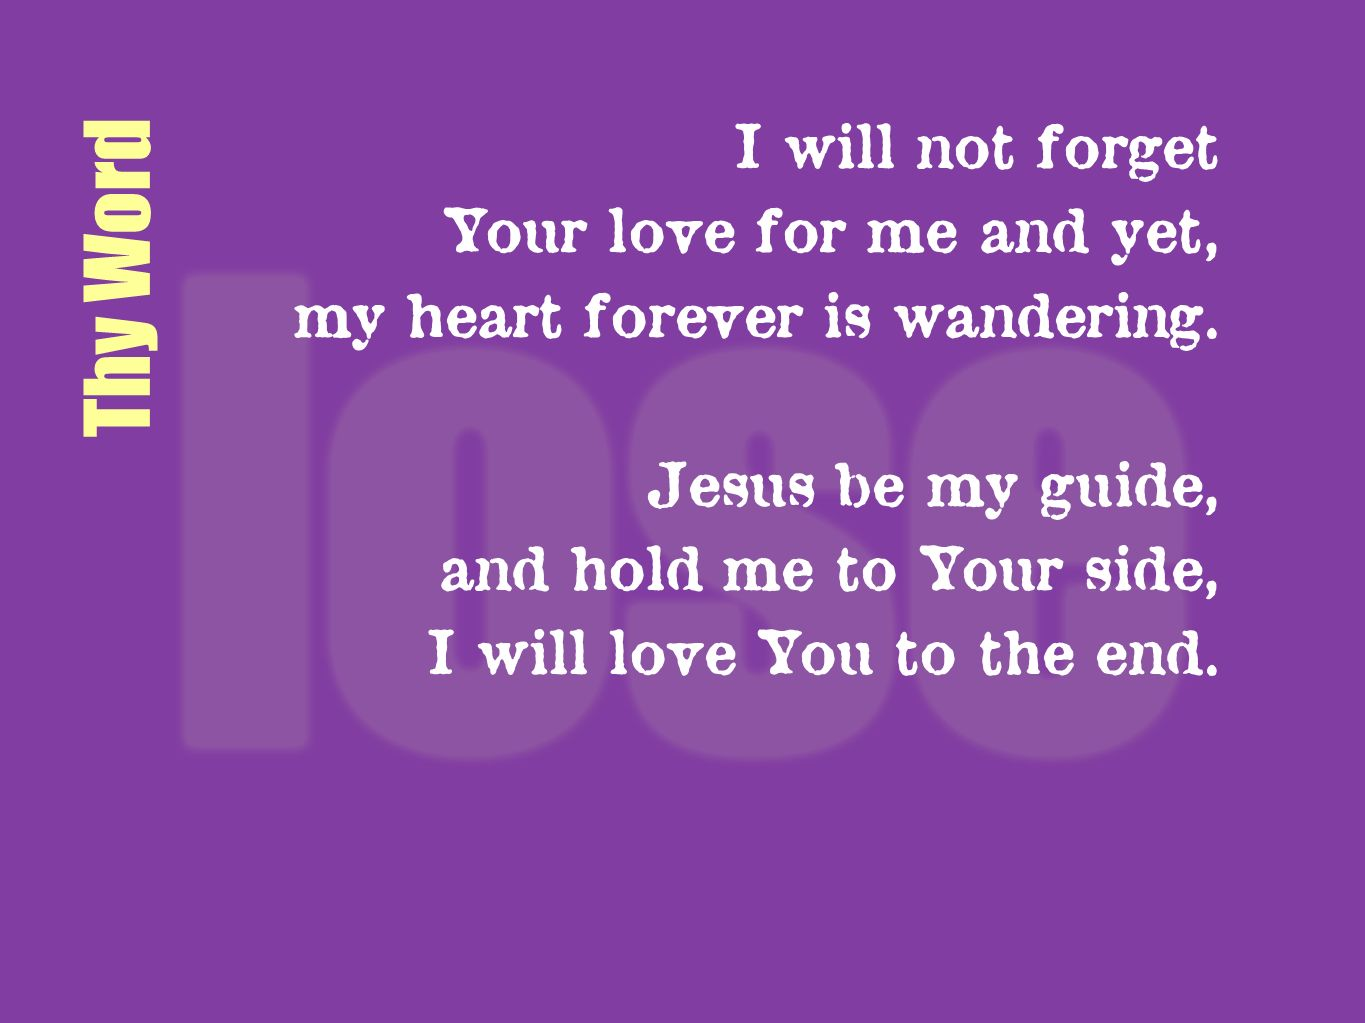 Thy Word I will not forget Your love for me and yet, my heart forever is wandering. Jesus be my guide, and hold me to Your side, I will love You to th